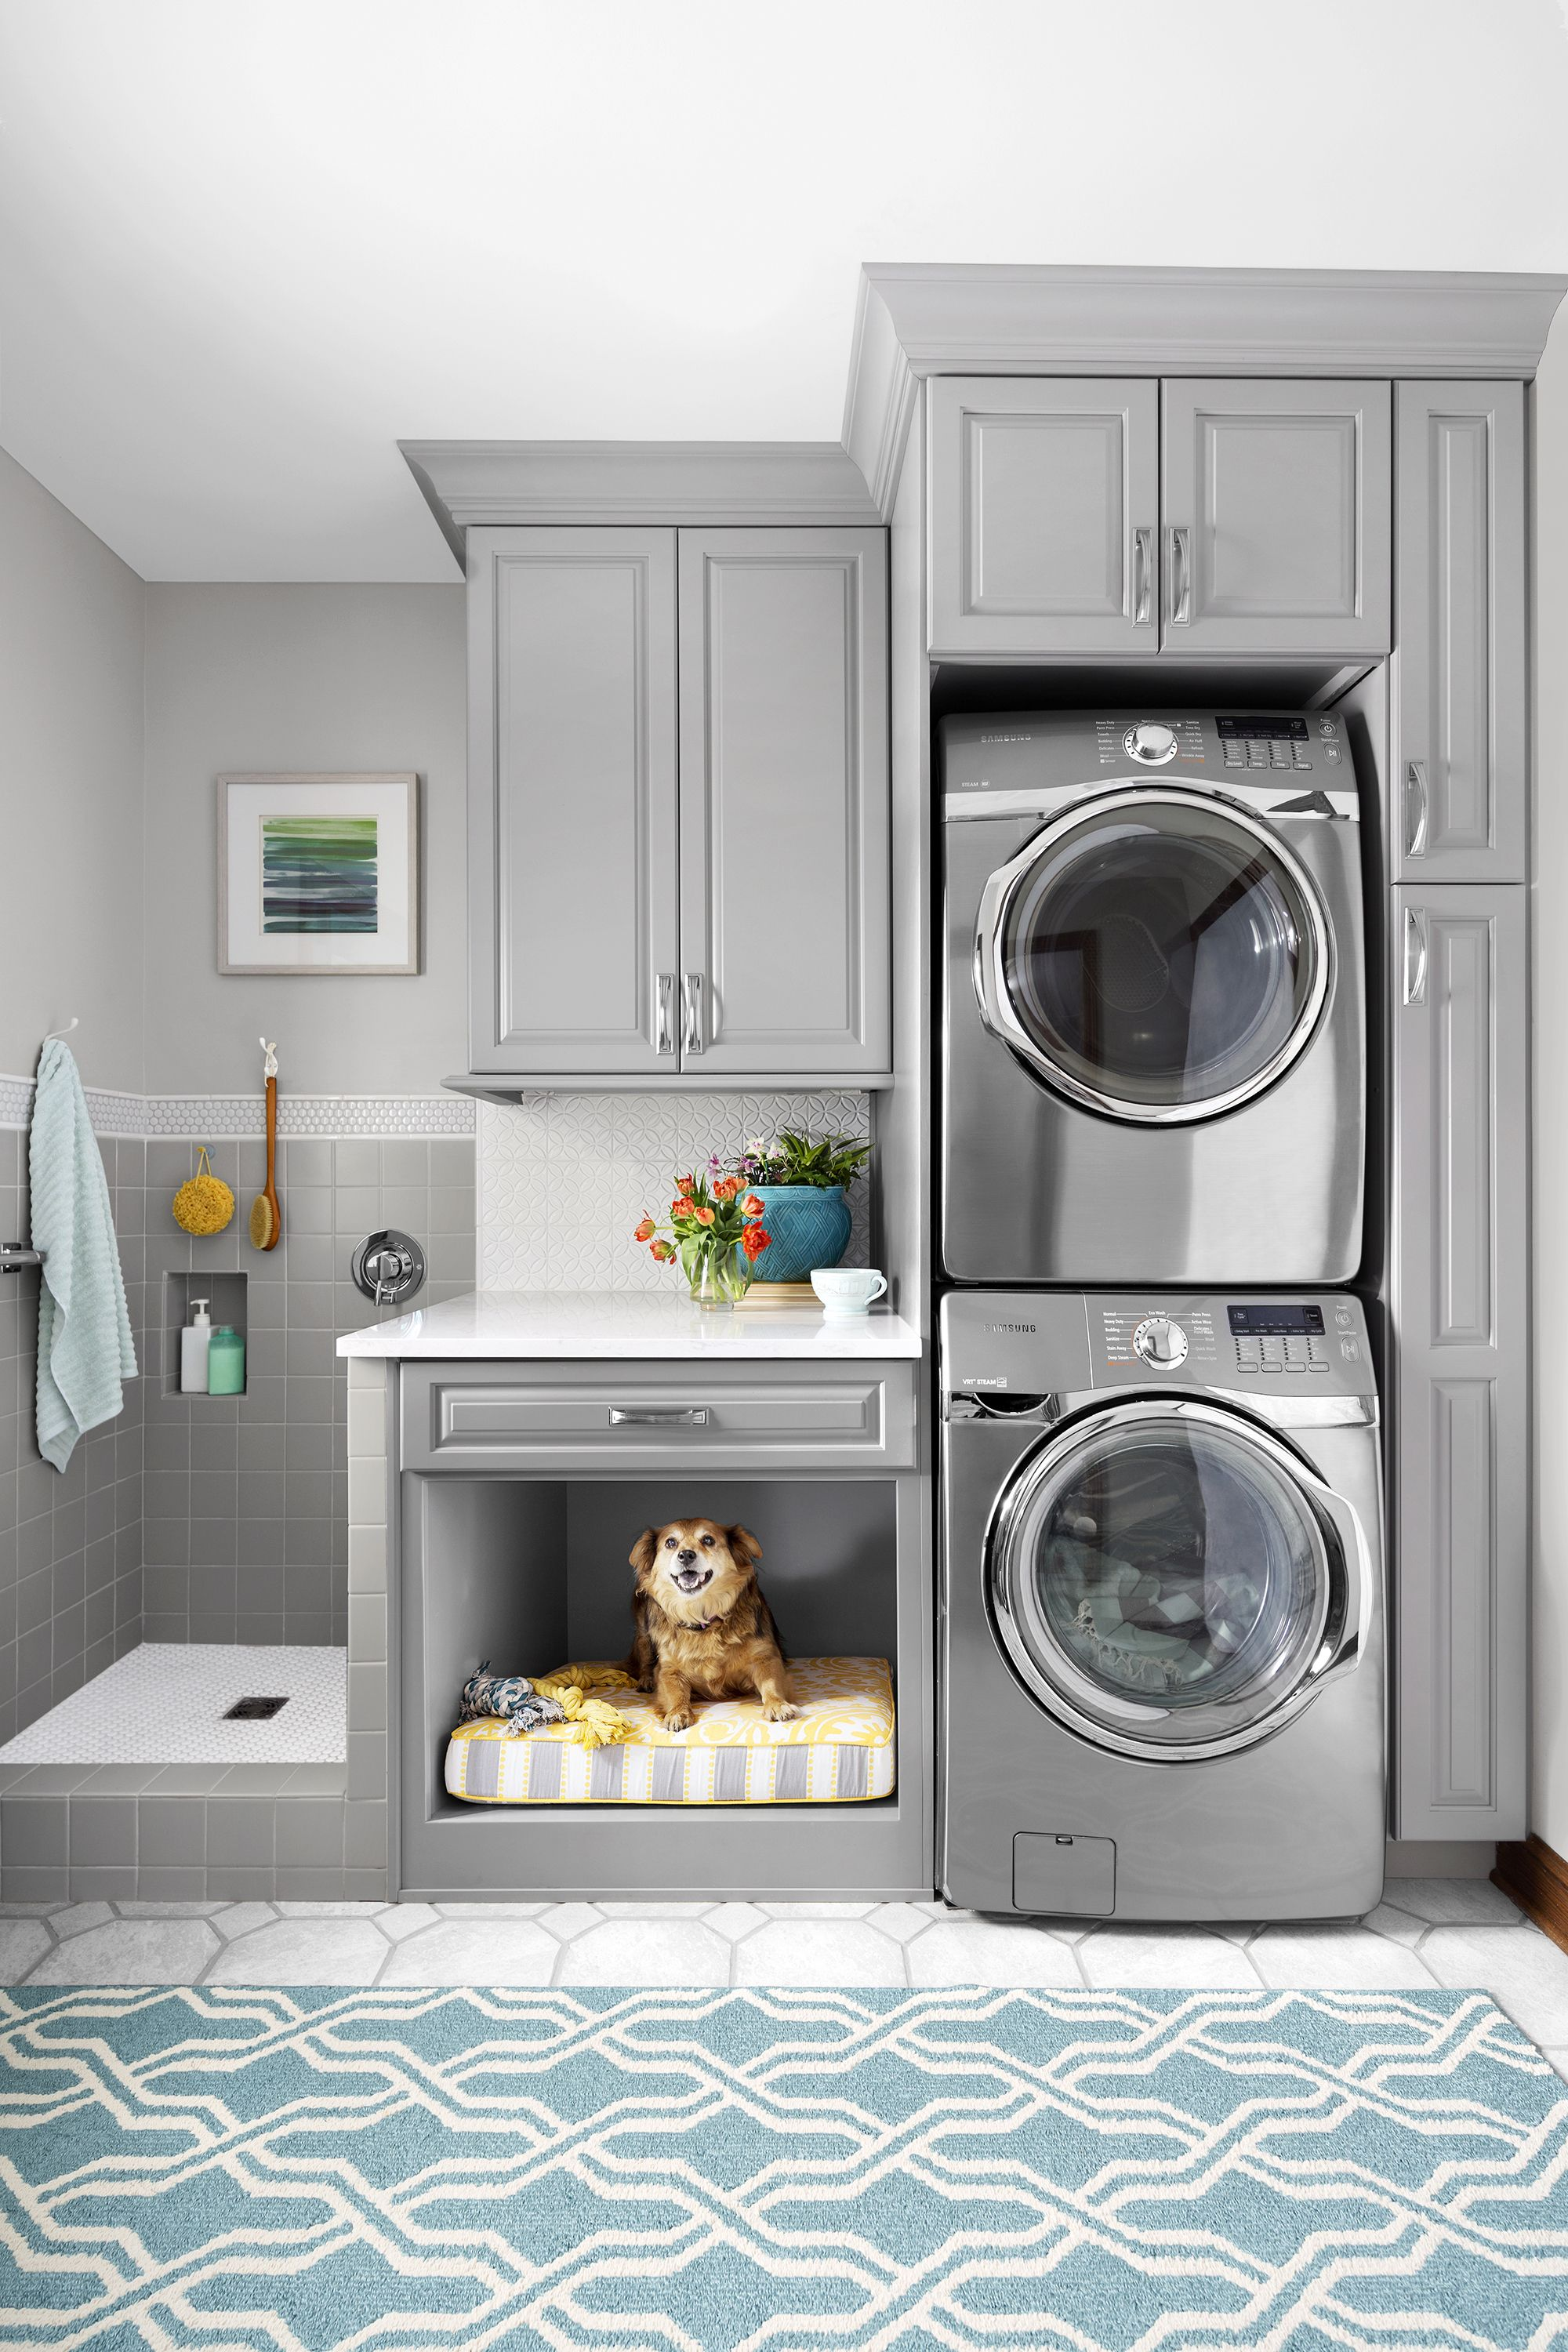 laundry room for vertical spaces diy laundry room laundry room rh pinterest com